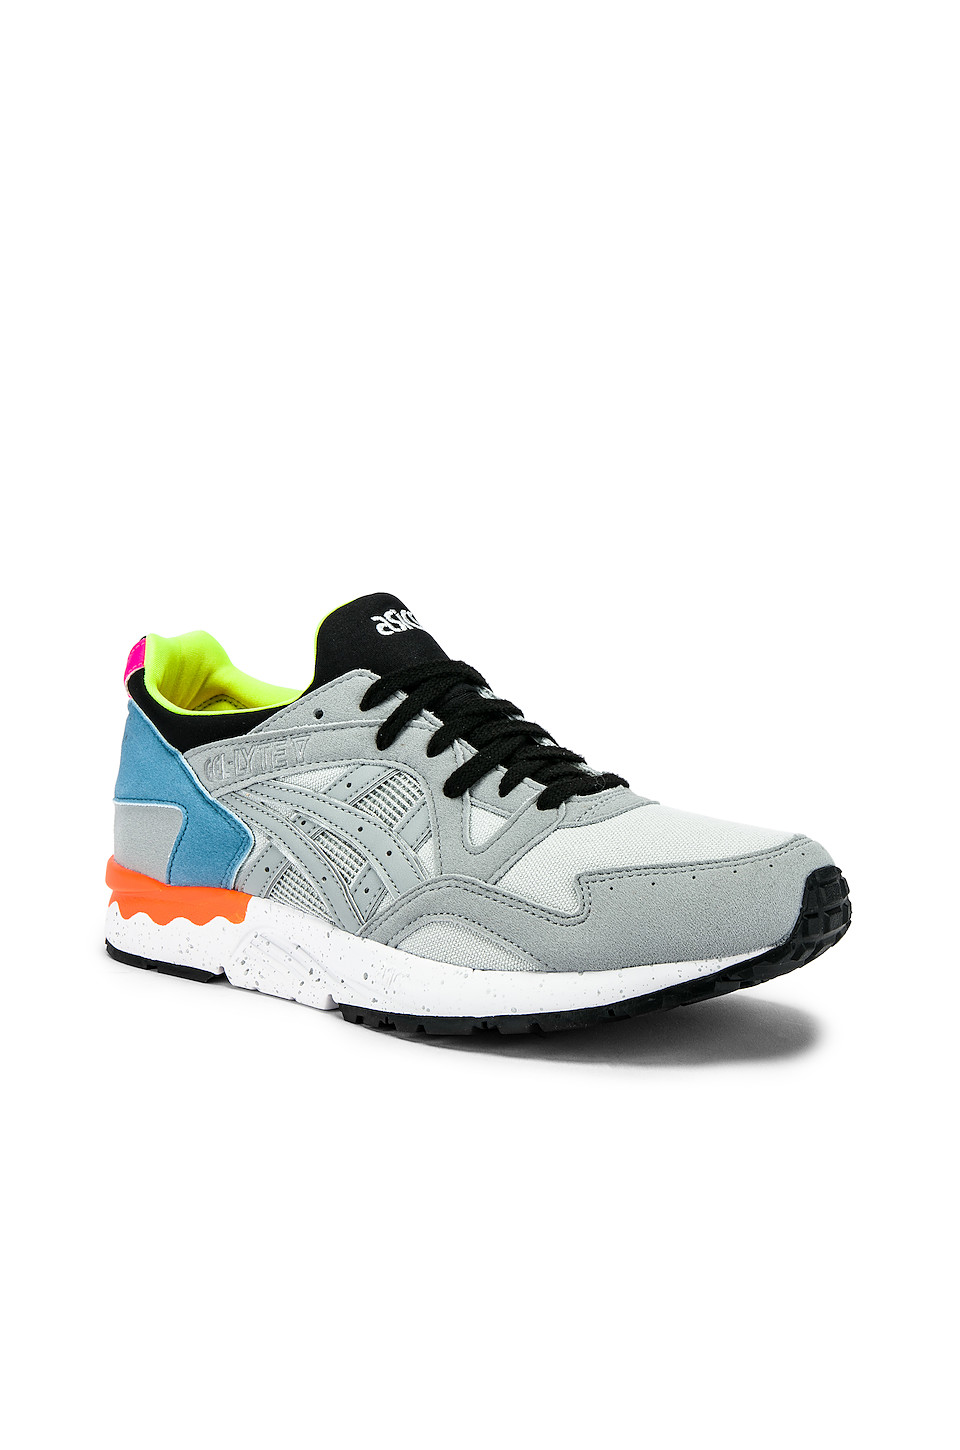 fbcfb330b4f6 Buy Original Asics Platinum Asics Gel Lyte V at Indonesia